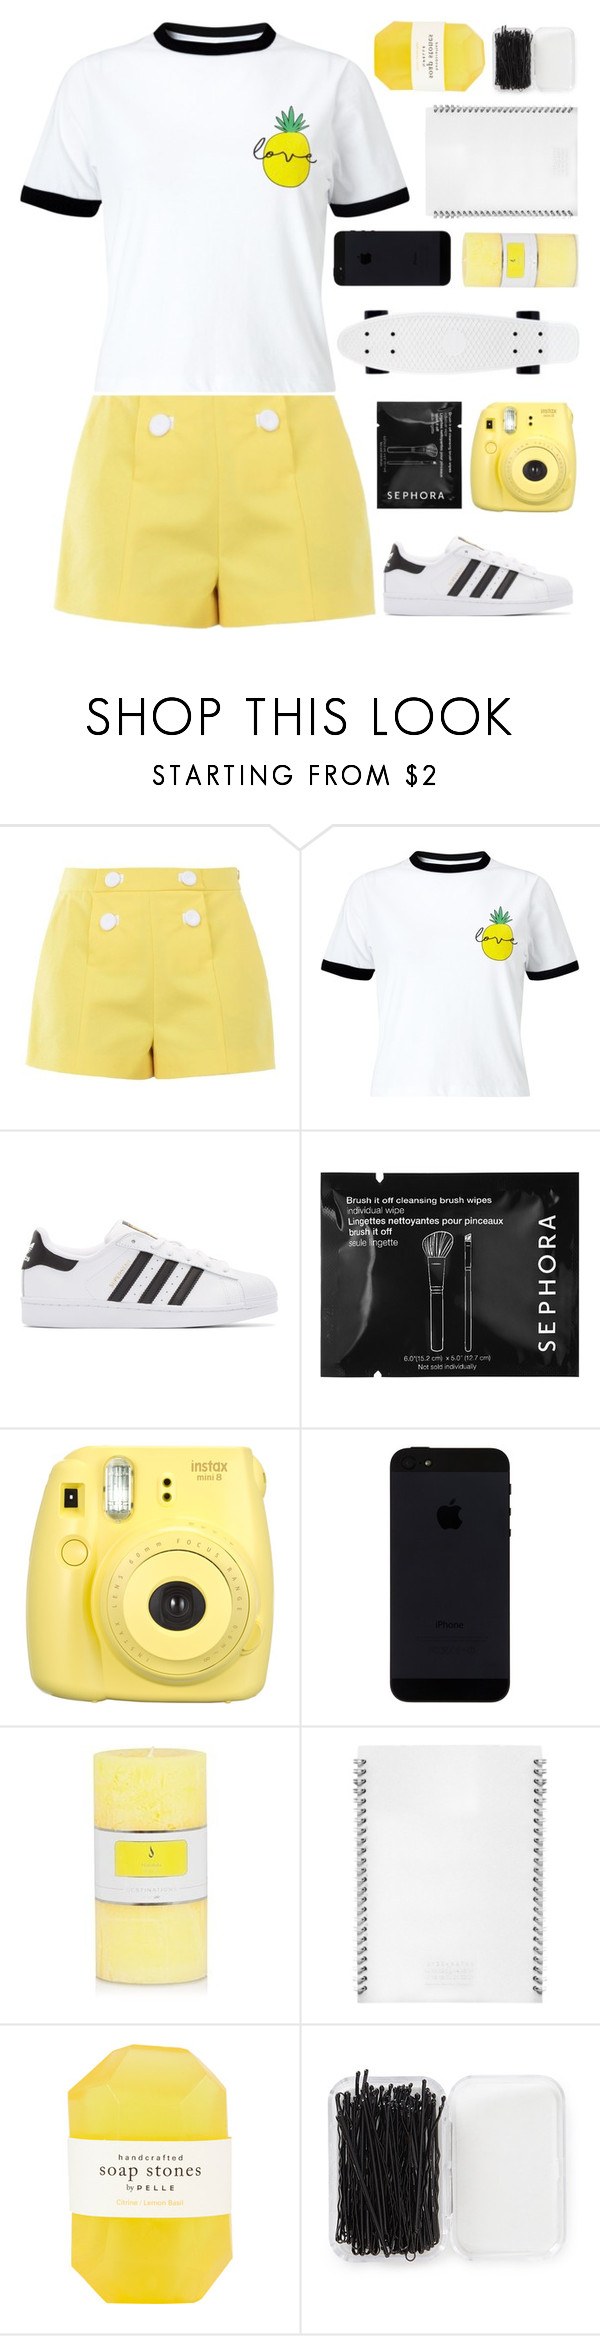 """""""MAKE A MOVE"""" by dianakhuzatyan ❤ liked on Polyvore featuring Boutique Moschino, Miss Selfridge, adidas Originals, Sephora Collection, Fujifilm, L'ATELIER d'exercices, Pelle, Forever 21, polyvorecommunity and polyvoreeditorial"""